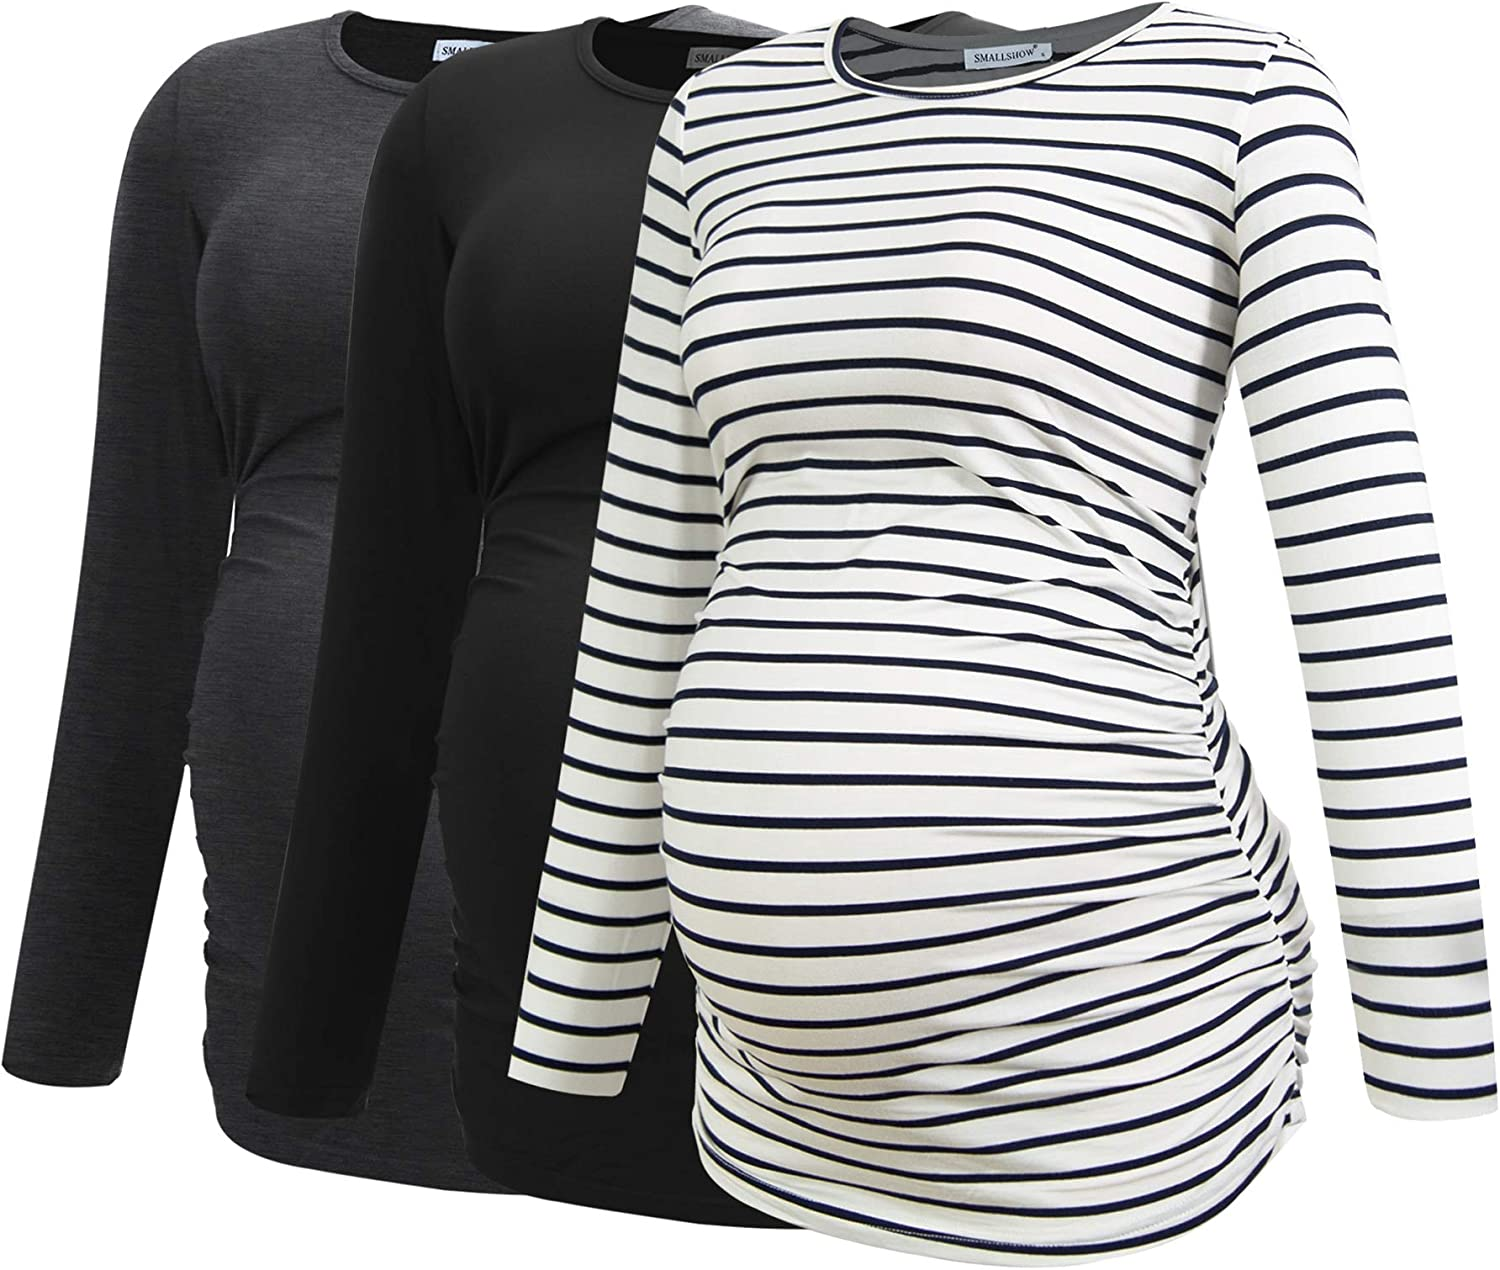 Smallshow Women's Maternity Max 35% OFF 69% OFF Shirts Pregnancy Long Sleeve Clothes